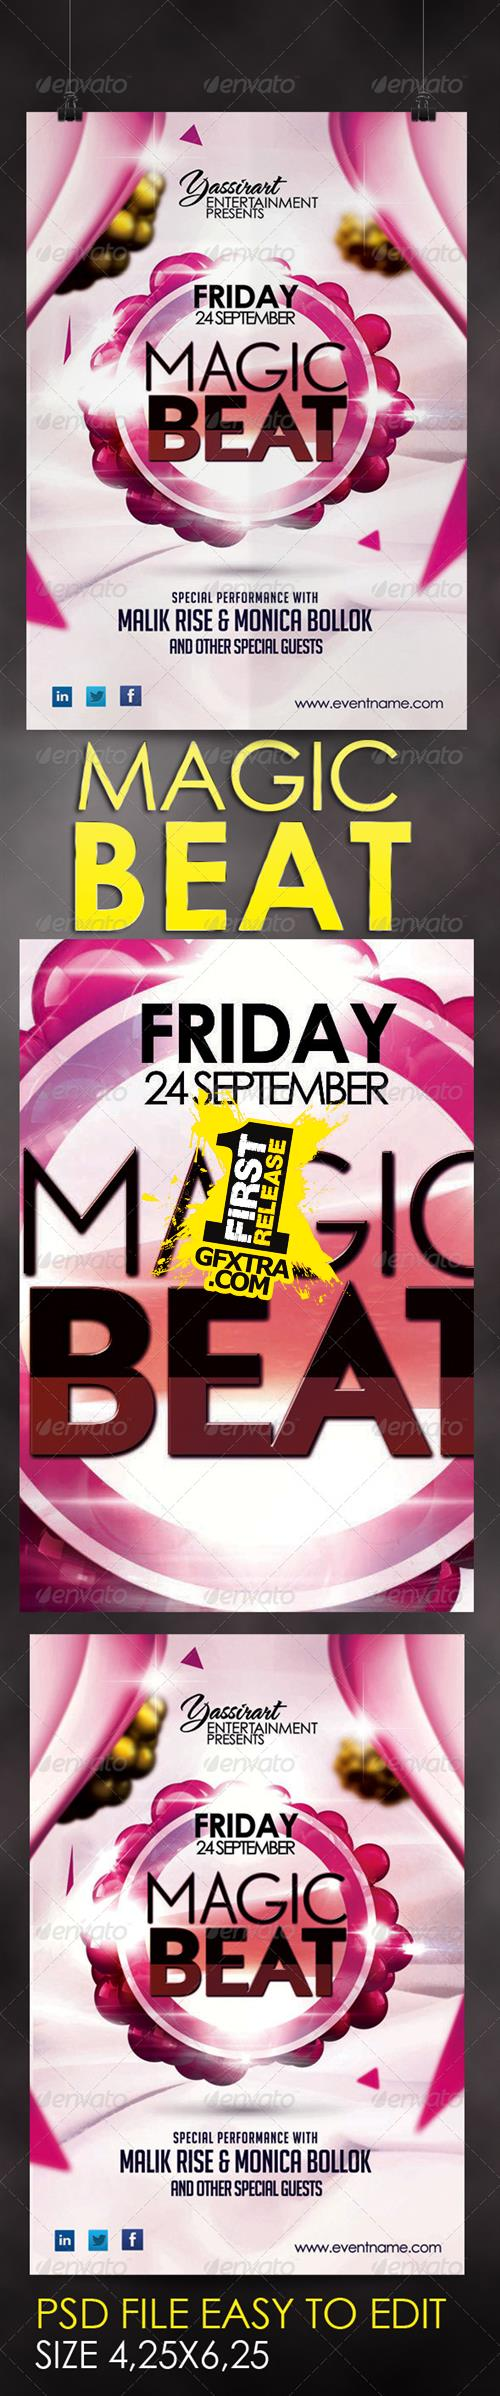 GraphicRiver - Magic Beat Flyer Template